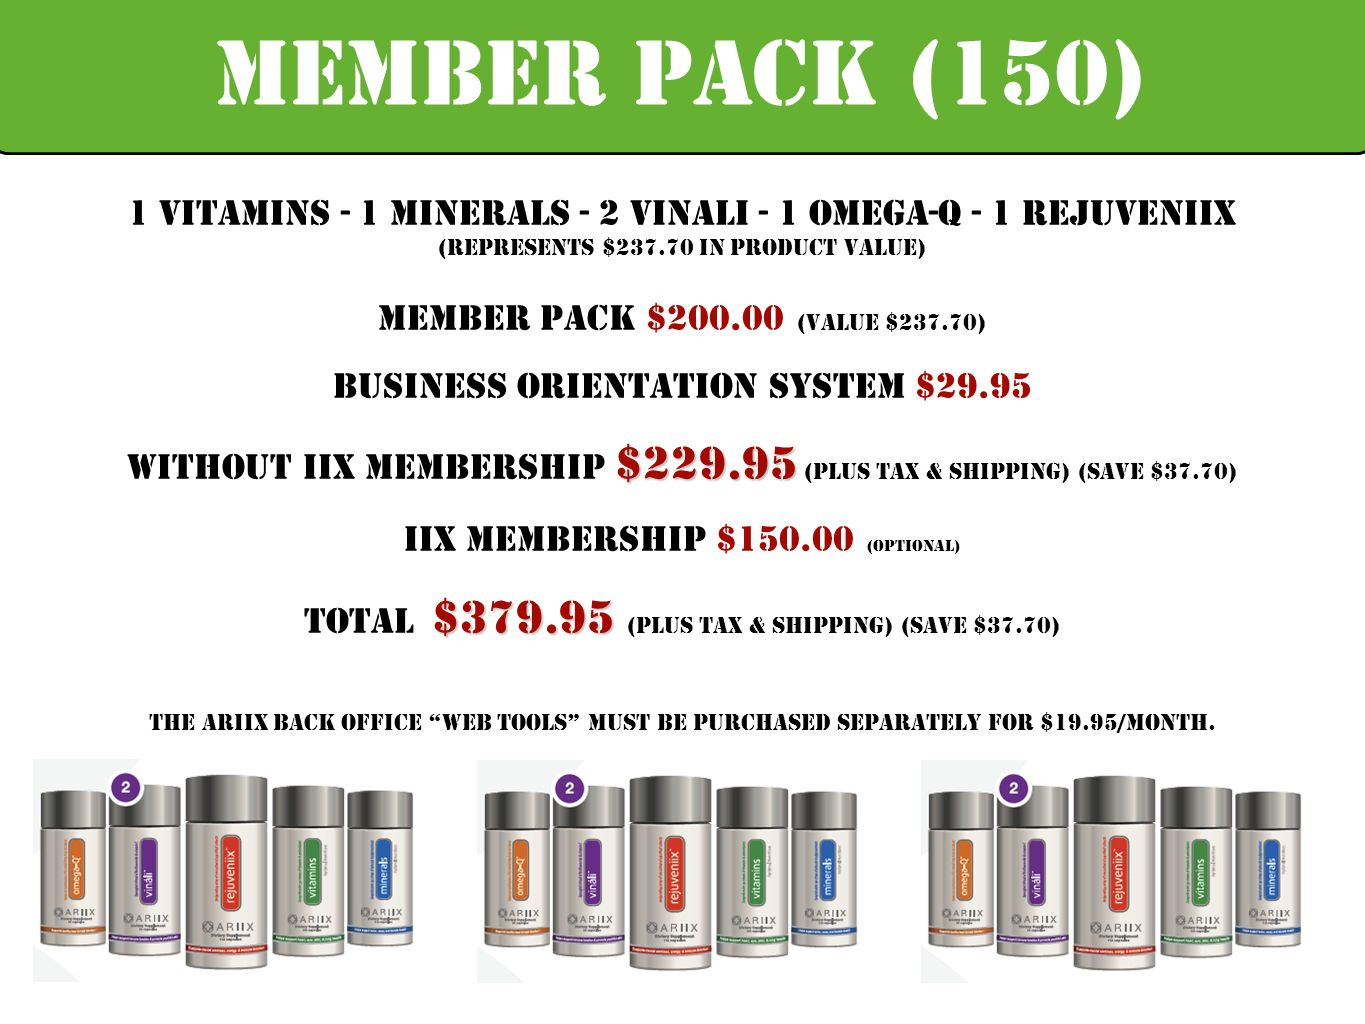 1 Vitamins - 1 Minerals - 2 Vinali - 1 Omega-Q - 1 Rejuveniix (Represents $237.70 in Product Value) Member pack $200.00 (Value $237.70) Business orien